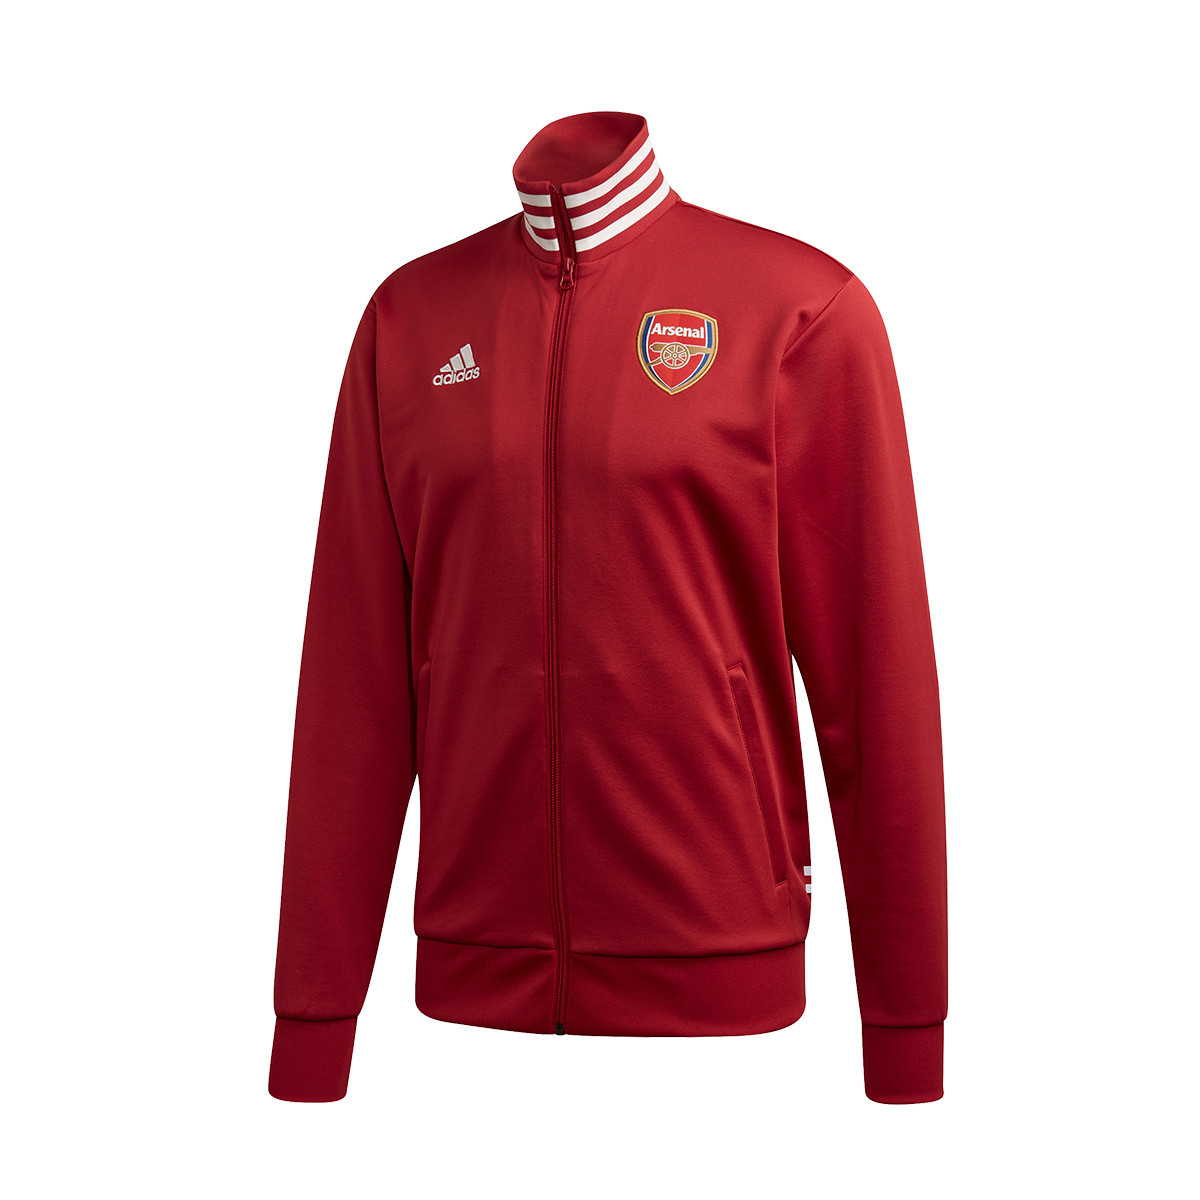 Giacca adidas Arsenal FC 3S TRK 2019 2020